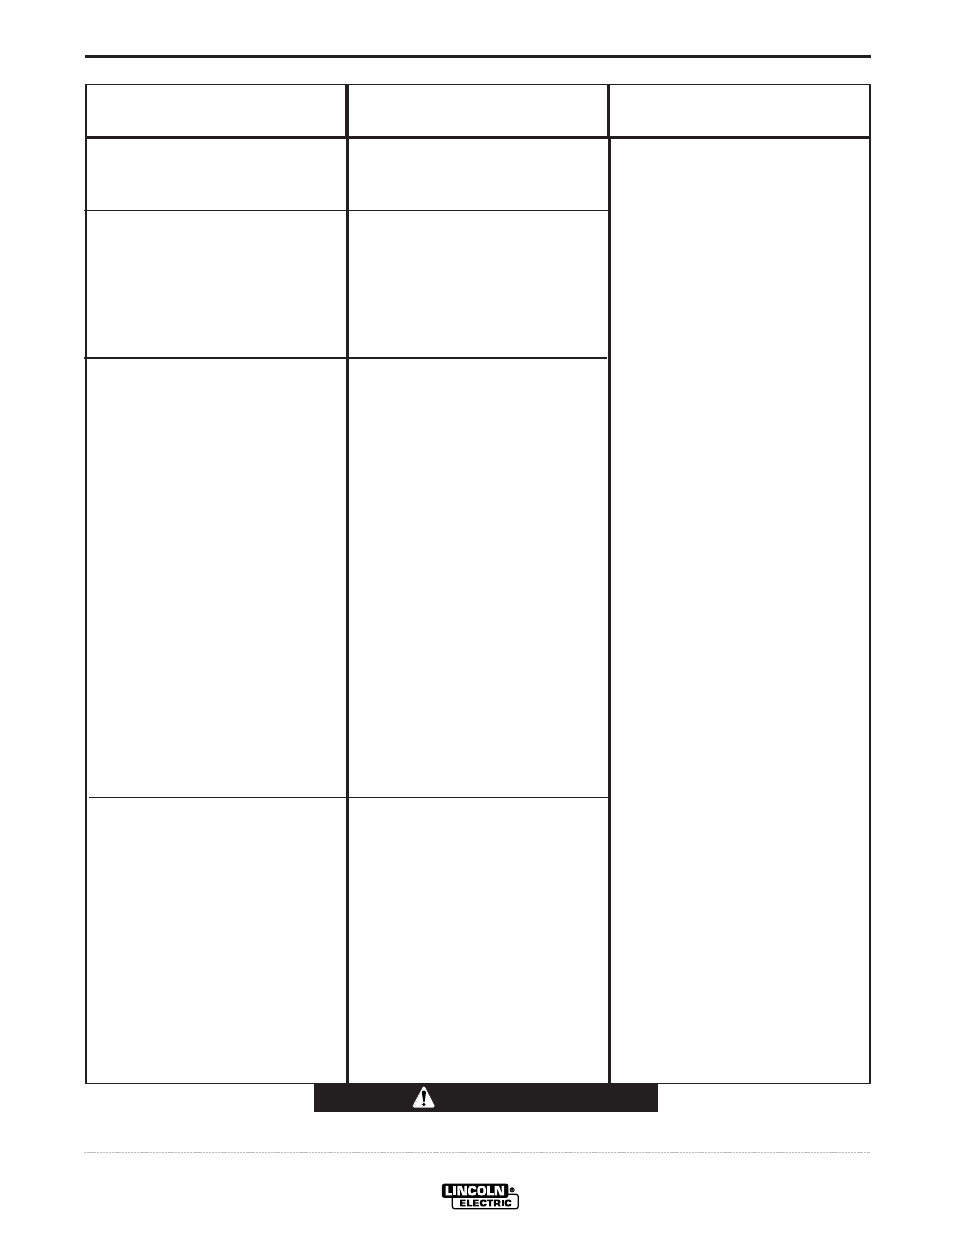 Troubleshooting, Caution | Lincoln Electric IM730 RANGER 305 D User Manual  | Page 32 / 54